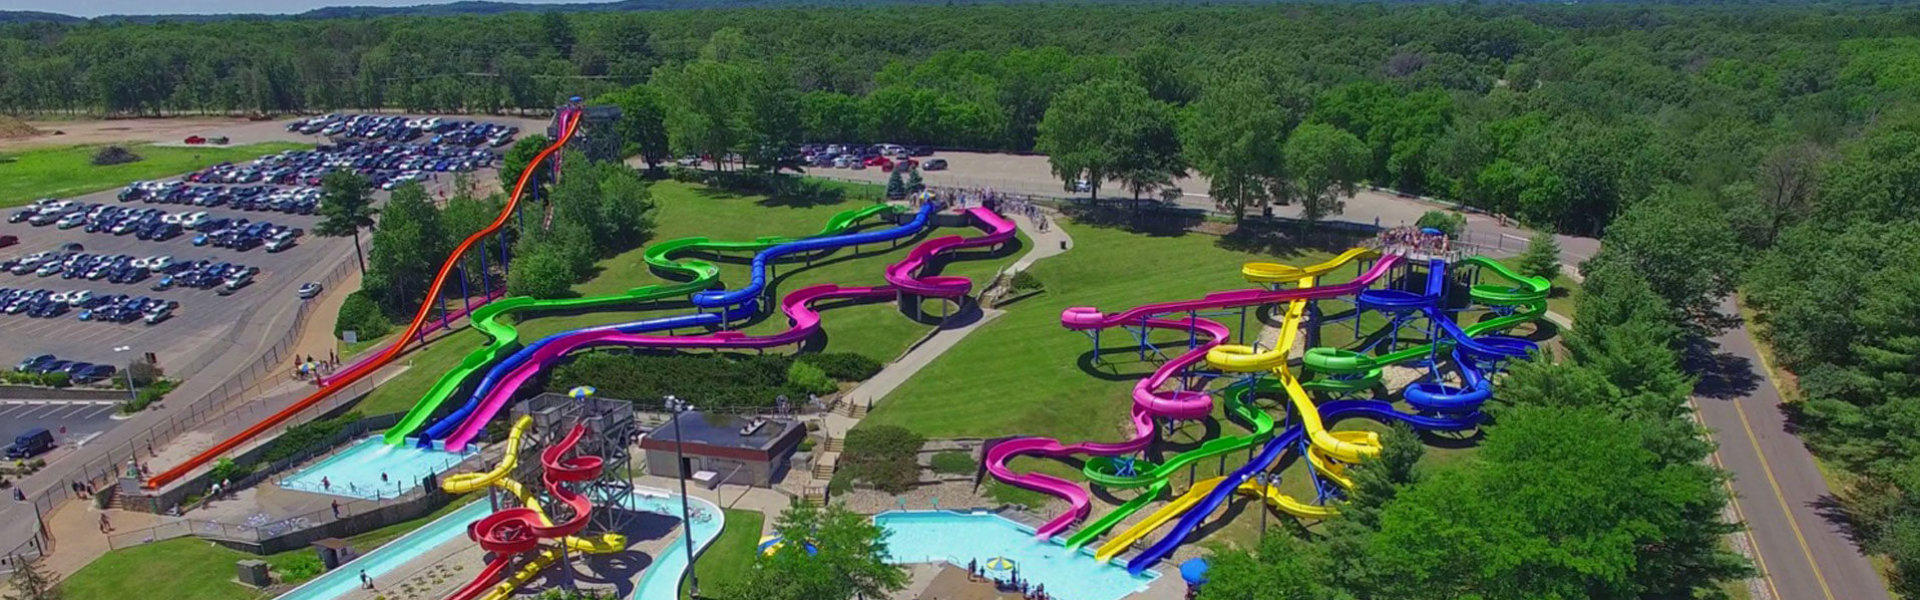 Top Theme Parks in Wisconsin Dells, WI